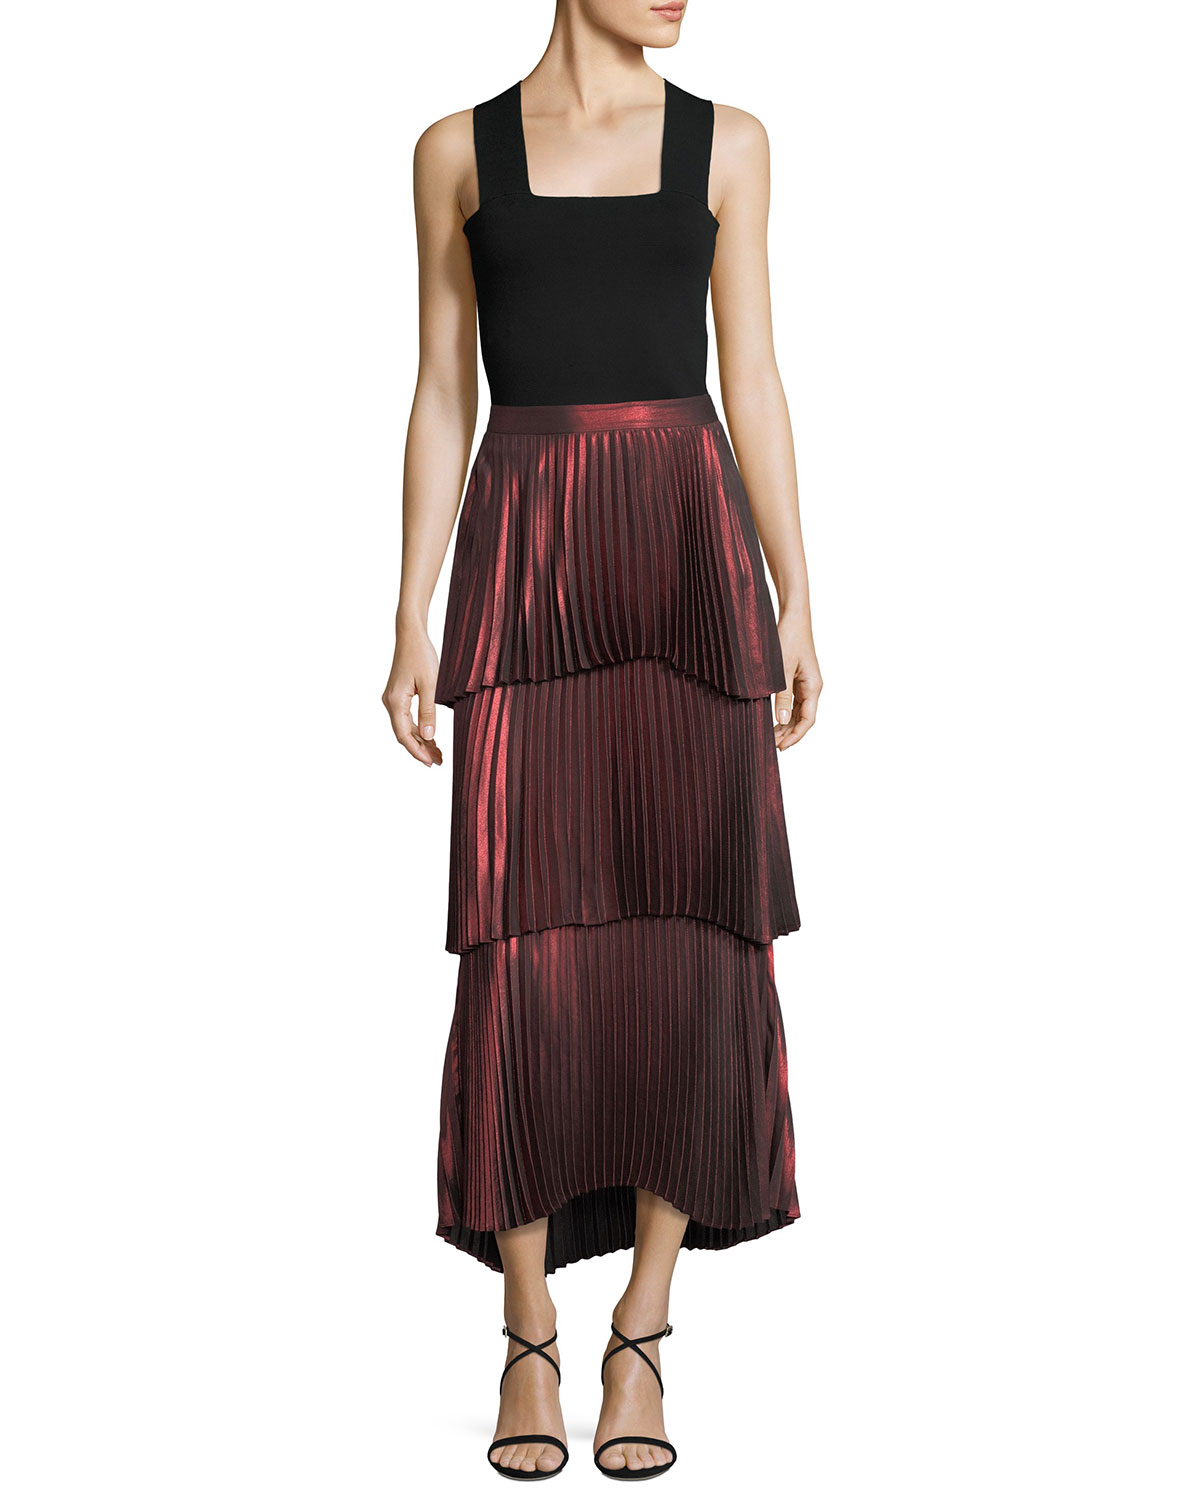 Harley Tiered Pleated Metallic Skirt